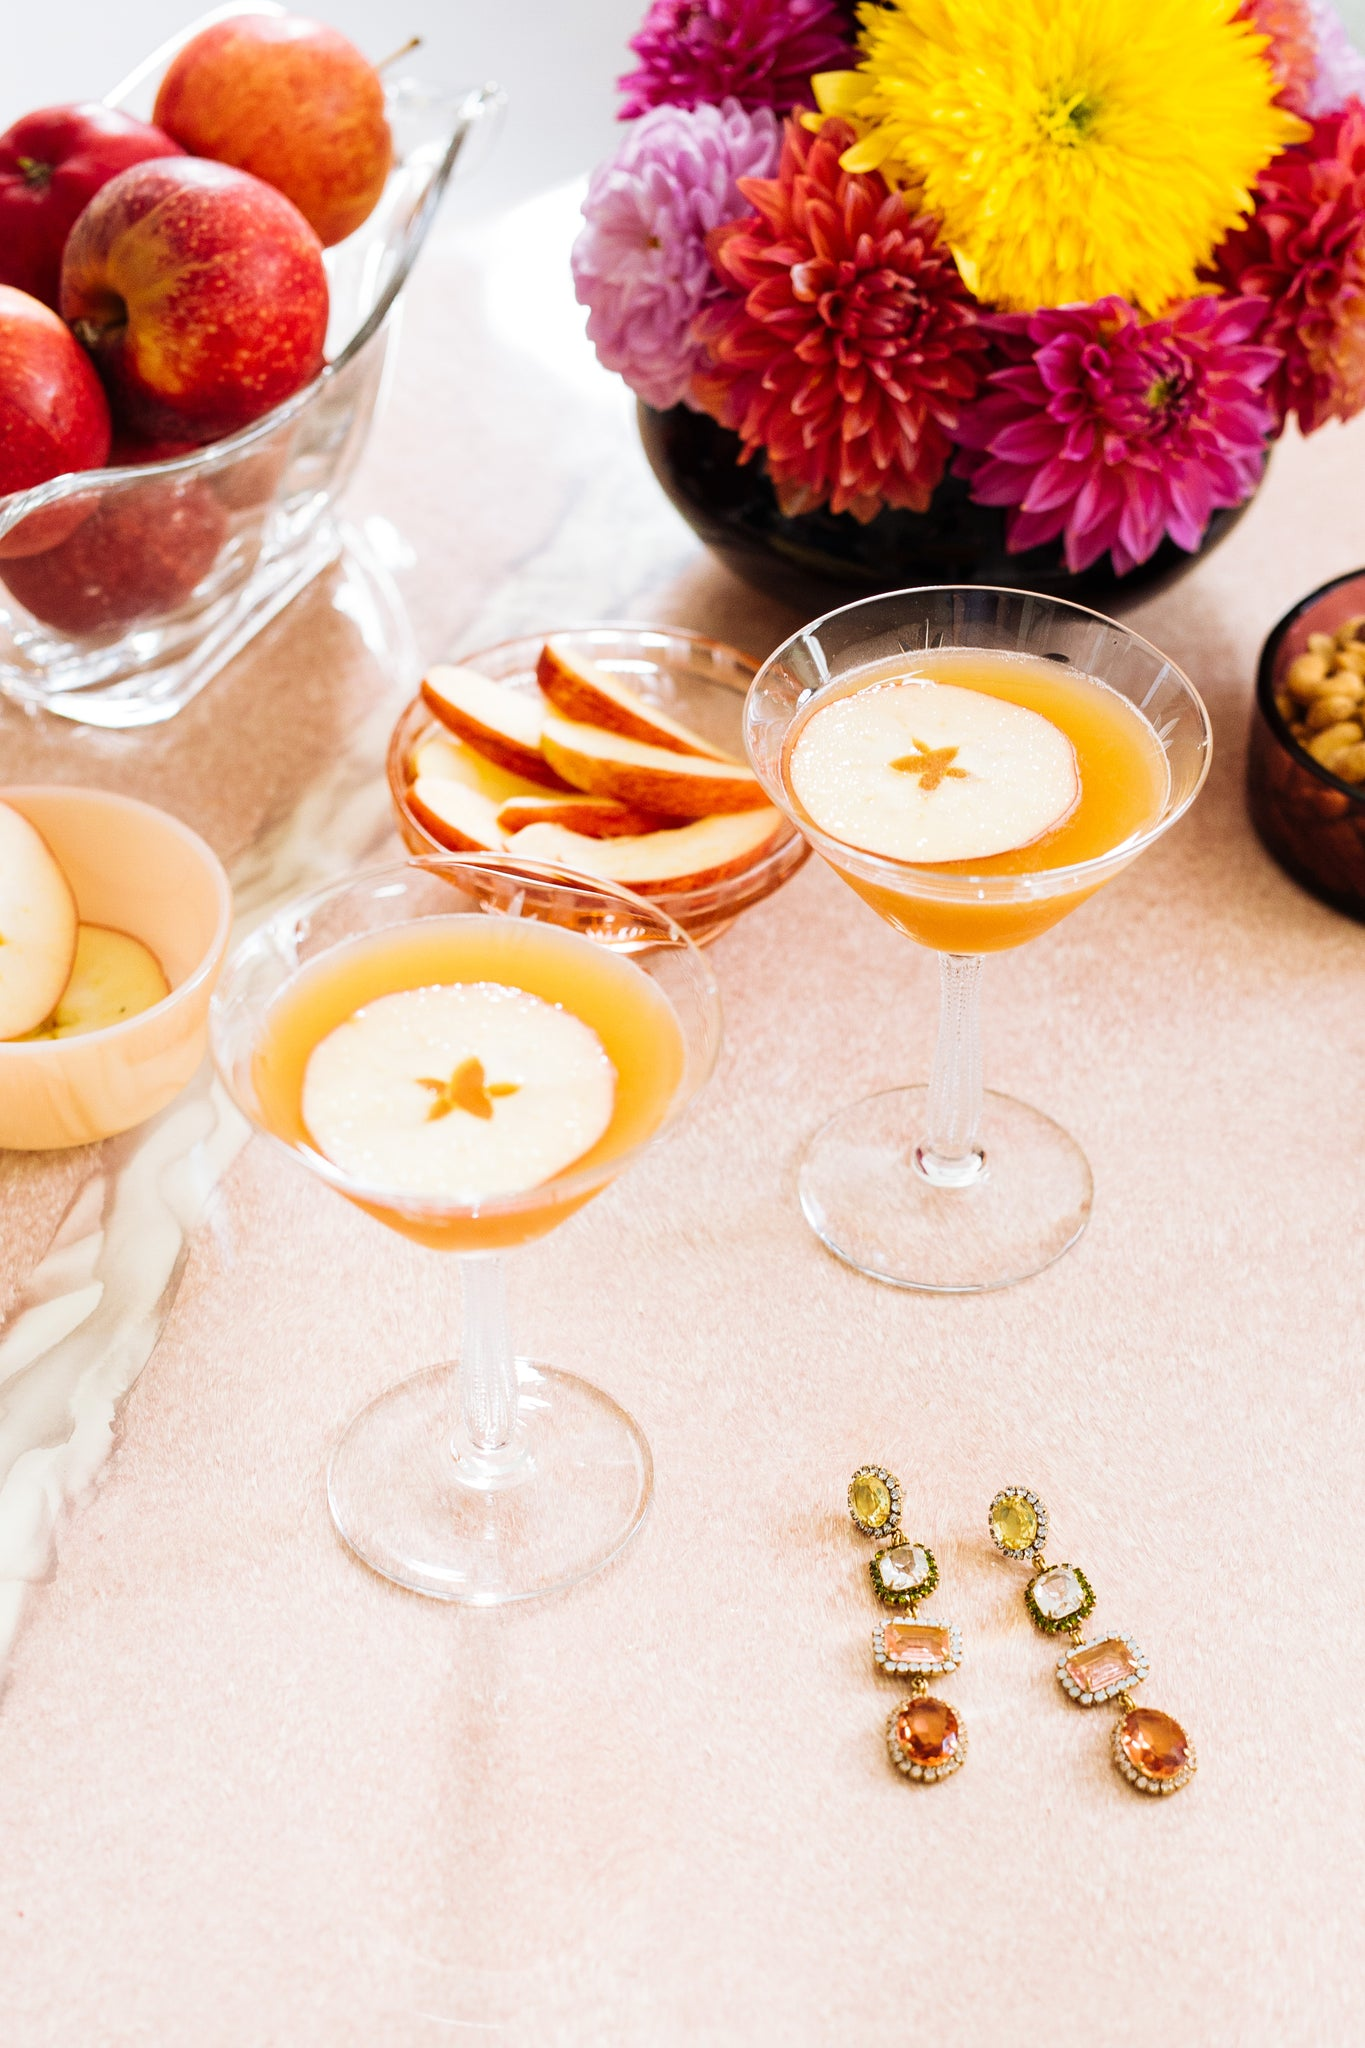 apple cider bourbon martini, apple cider cocktail, apple season new england - loren hope